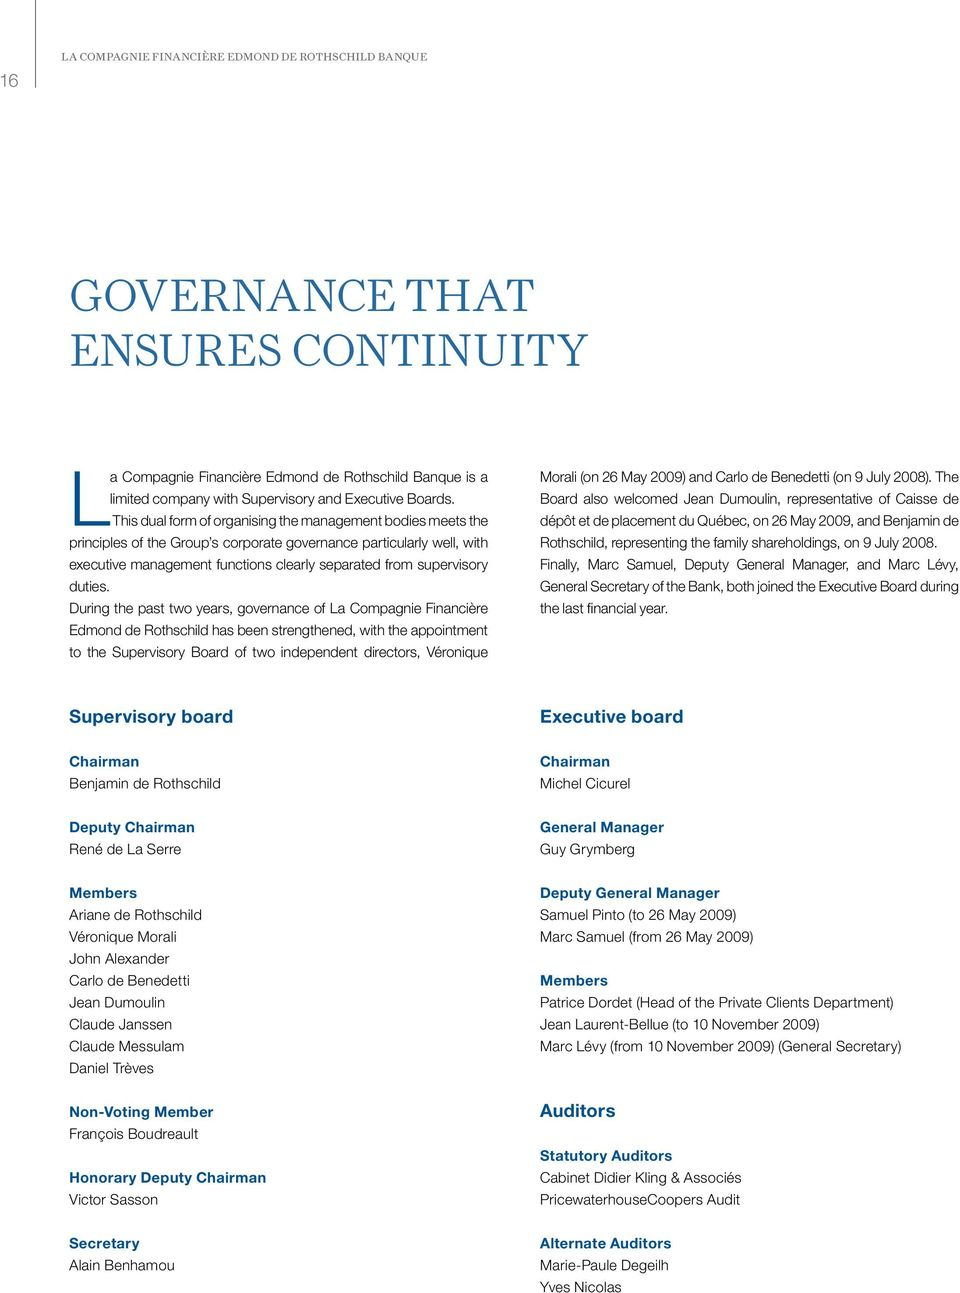 This dual form of organising the management bodies meets the principles of the Group s corporate governance particularly well, with executive management functions clearly separated from supervisory